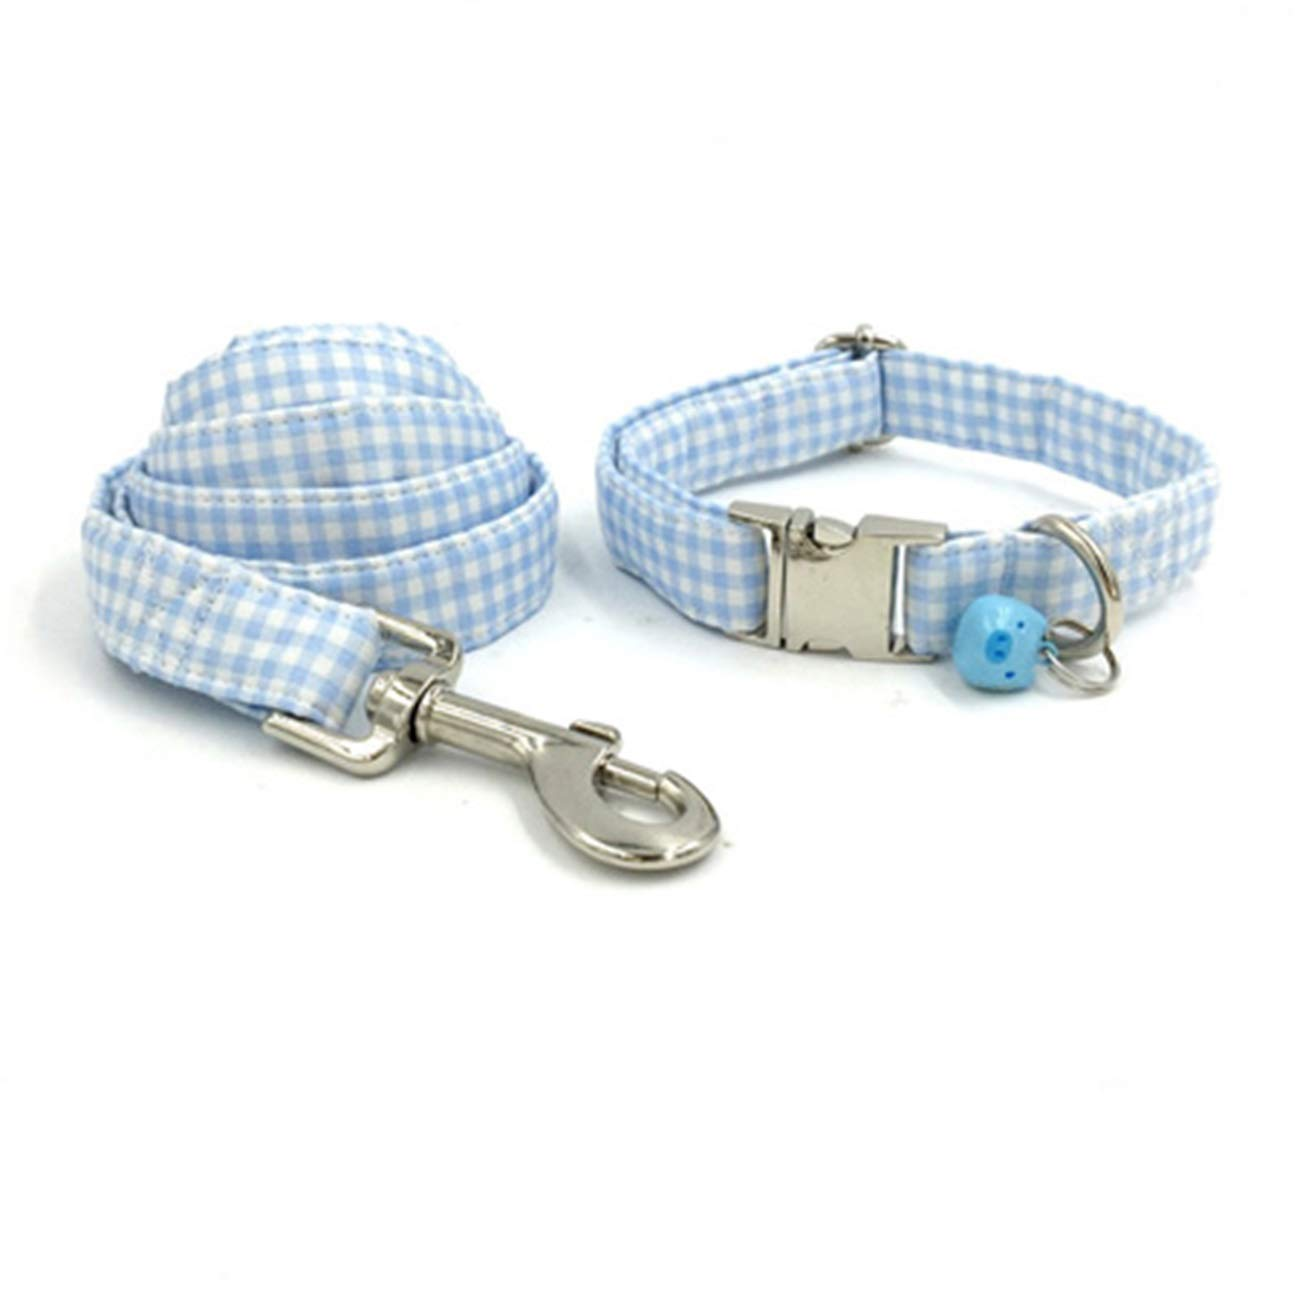 Collar and leash M collar and leash M Beatybag bluee Plaid Dog Collar with bluee Pig Bell and Bow Cotton Dog&Cat Necklace Adjustable Dog Collars and Dog Leash Pet Supply Collar and Leash M